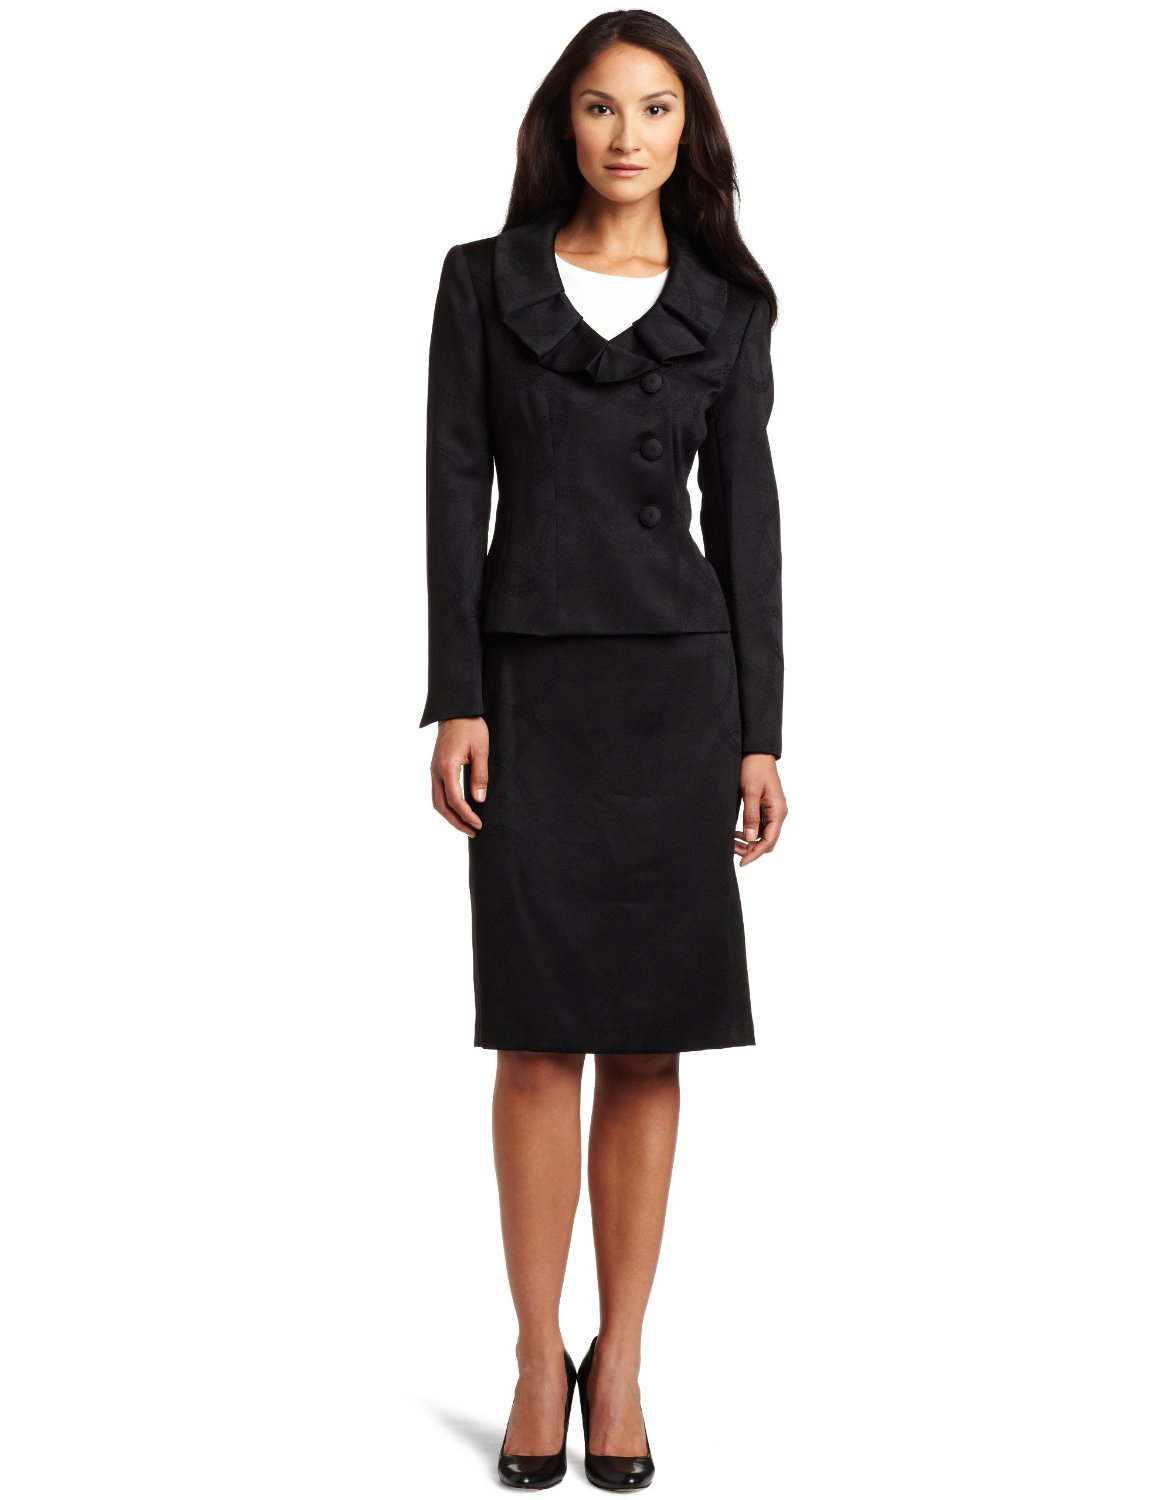 Women S Business Casual Dress Suits 2013 Cheap Affordable